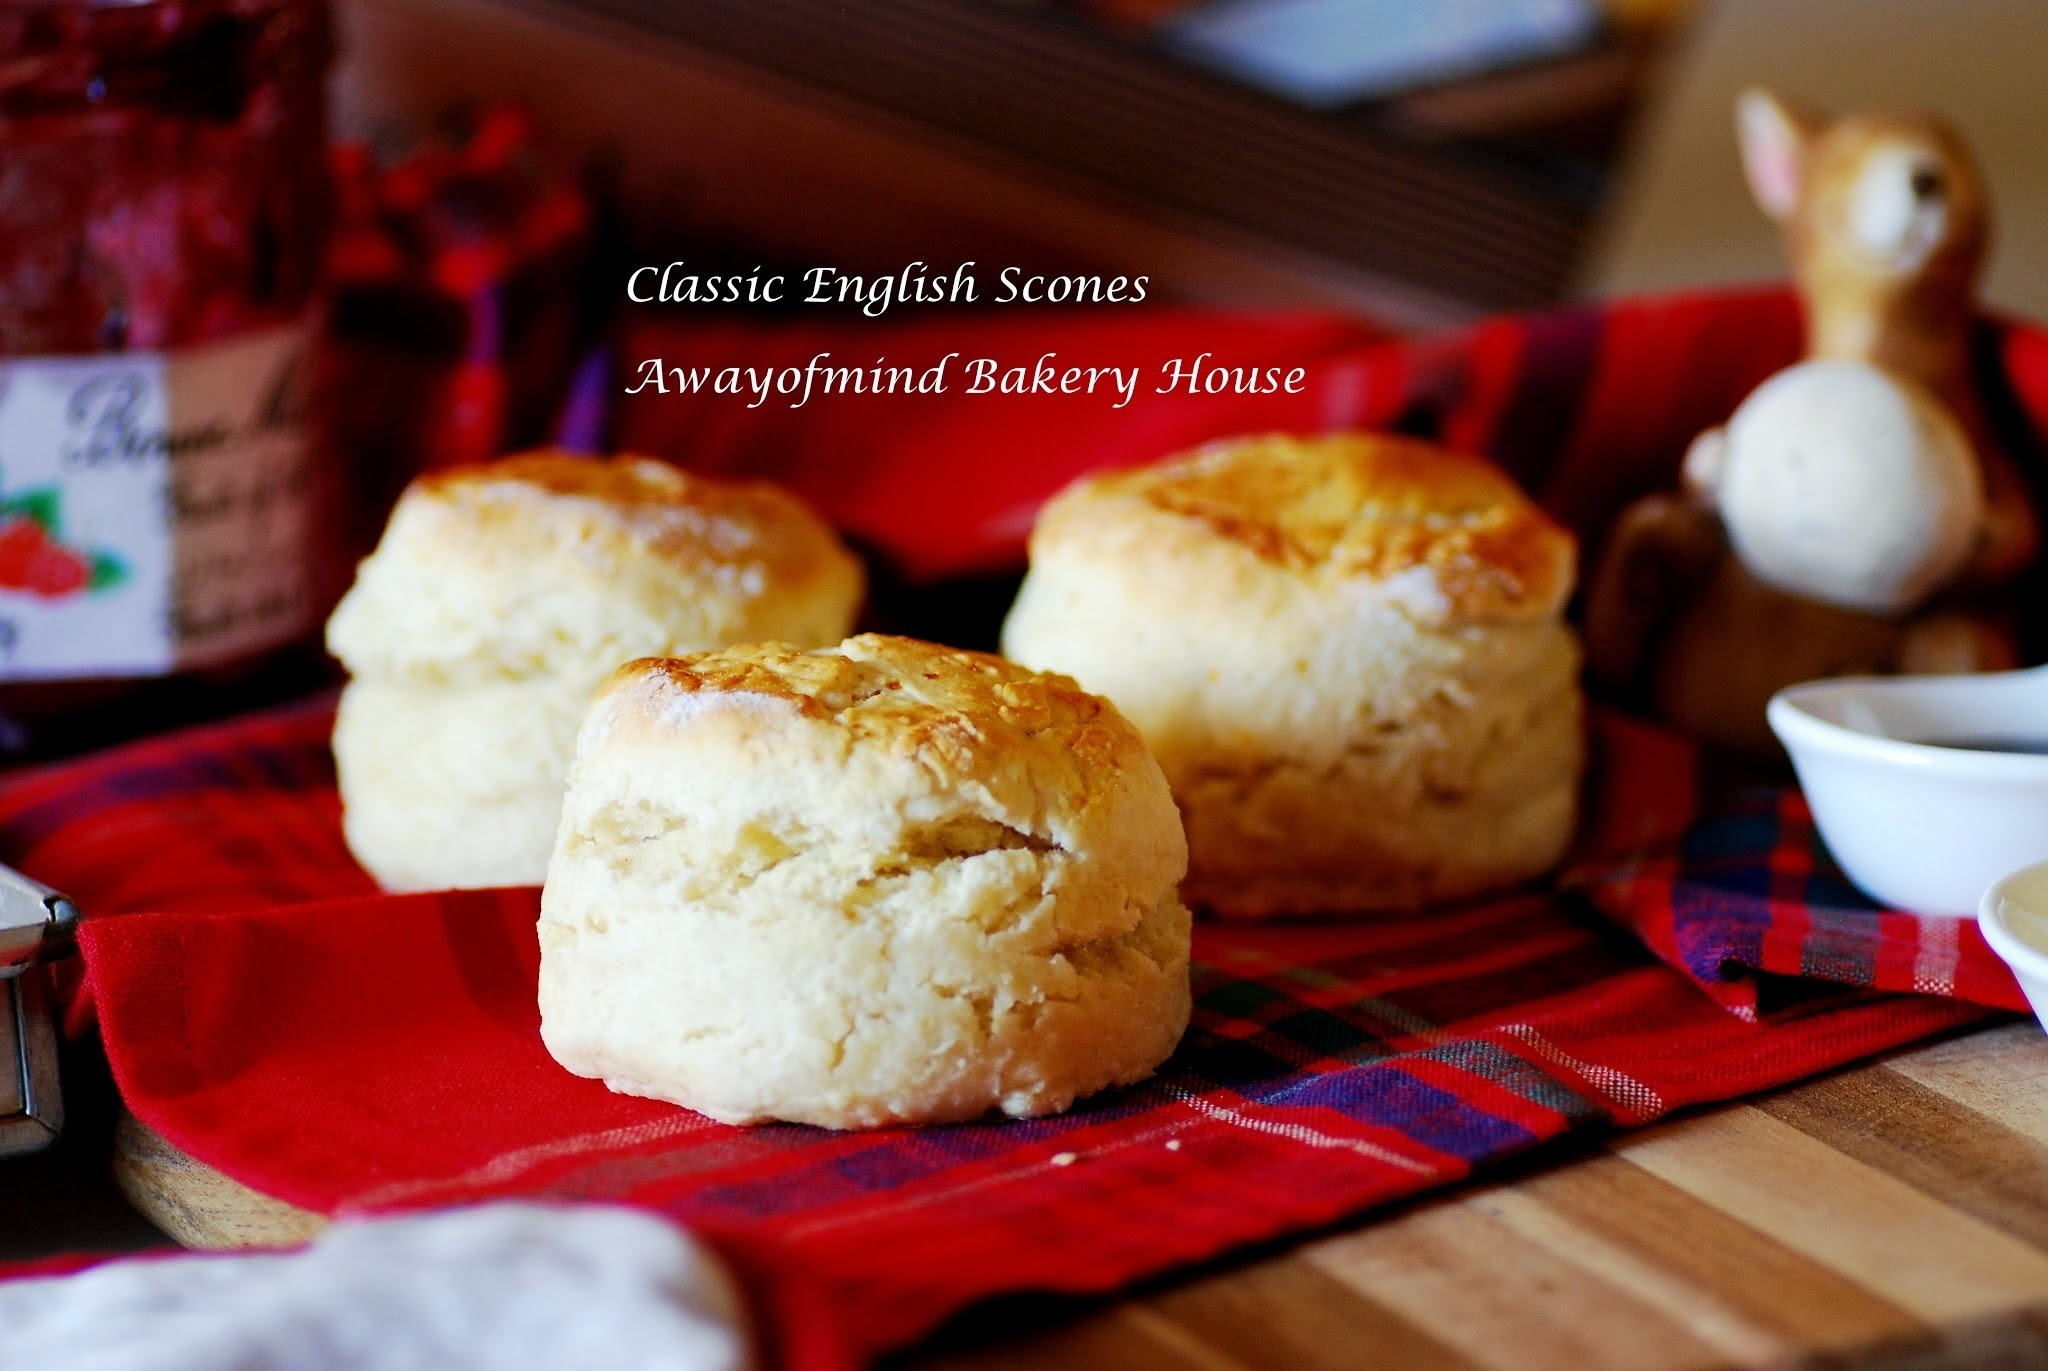 Classic English Scones